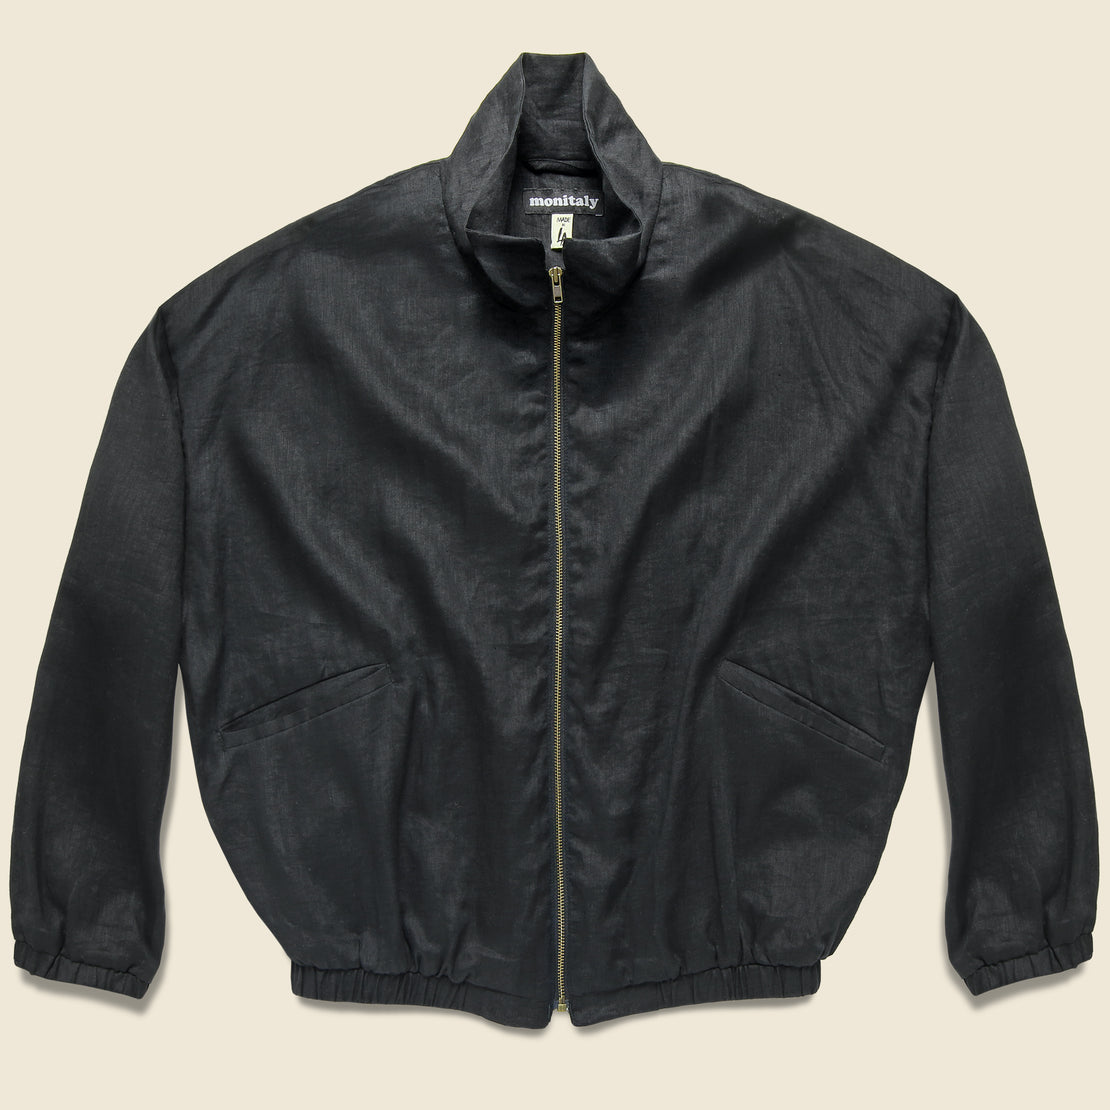 Monitaly Old Dog Linen Blouson Jacket - Black